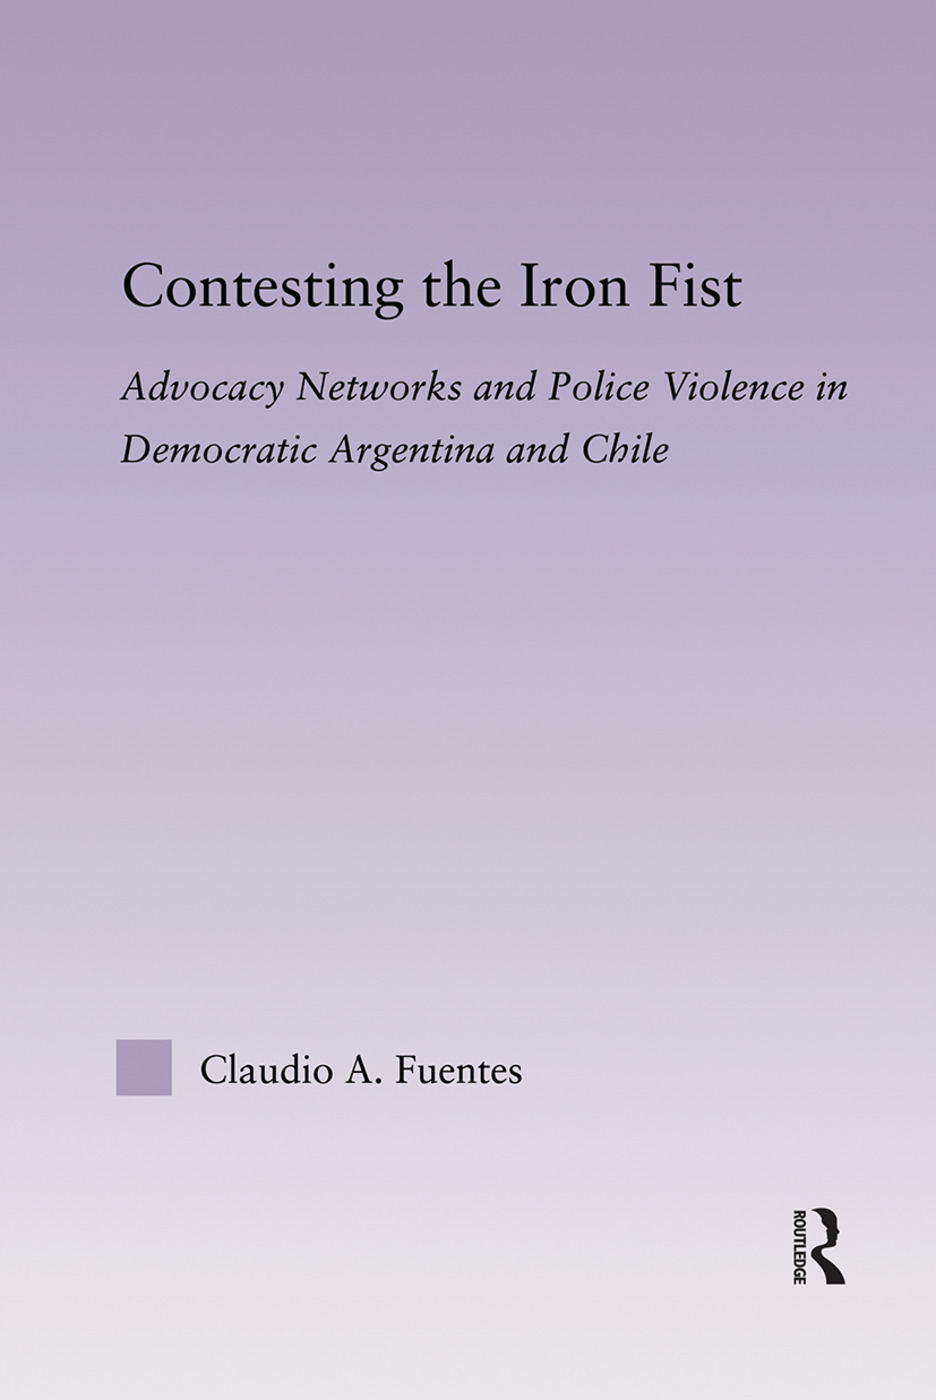 Contesting the Iron Fist: Advocacy Networks and Police Violence in Democratic Argentina and Chile (Paperback) book cover